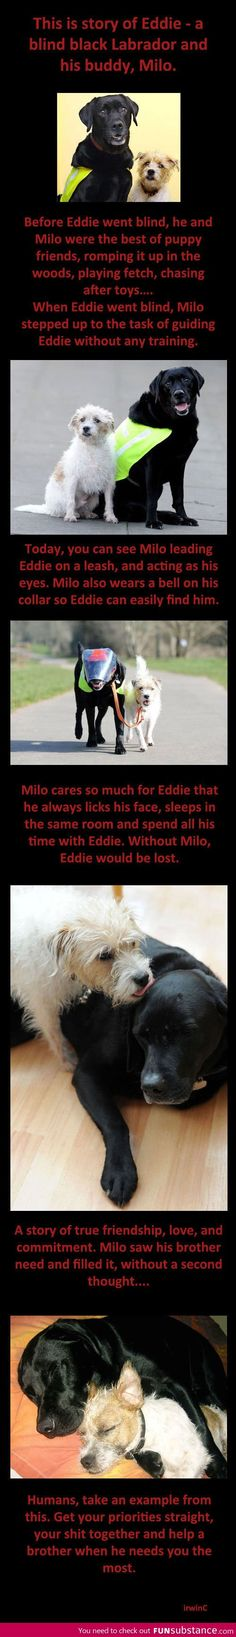 Awwww the sweetest story ever!